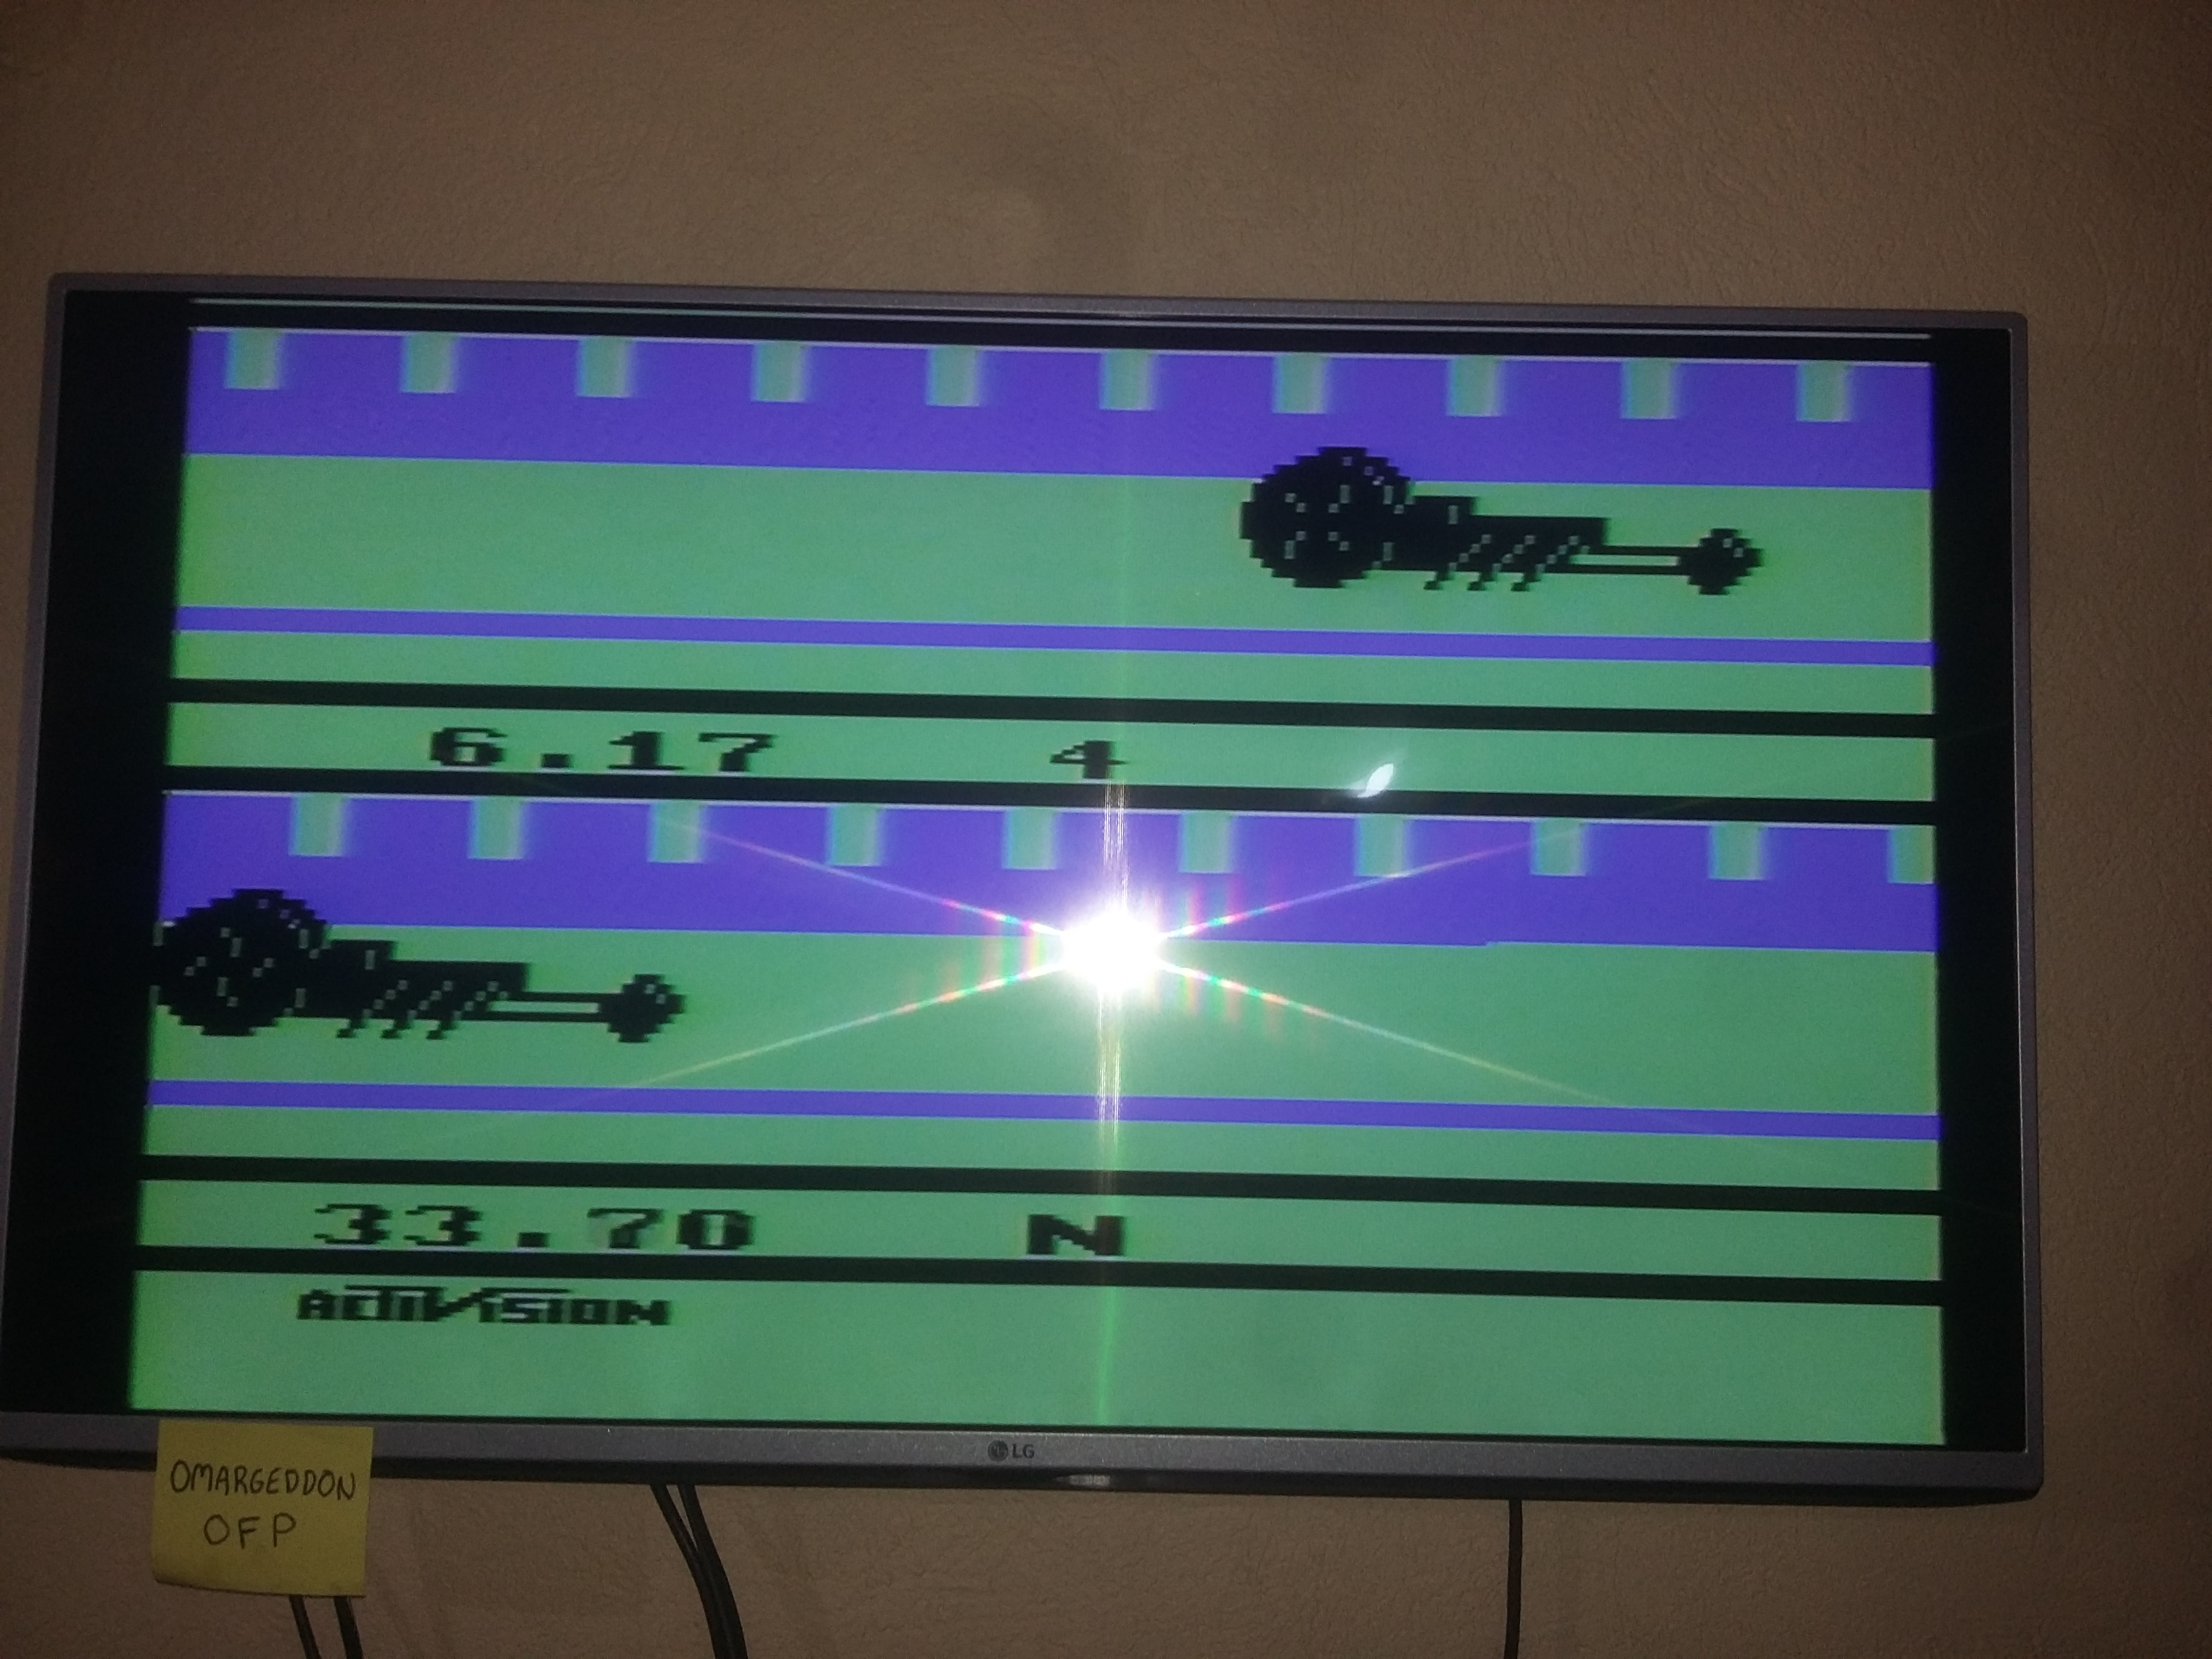 omargeddon: Dragster (Atari 2600 Expert/A) 0:00:06.17 points on 2016-12-24 16:03:32